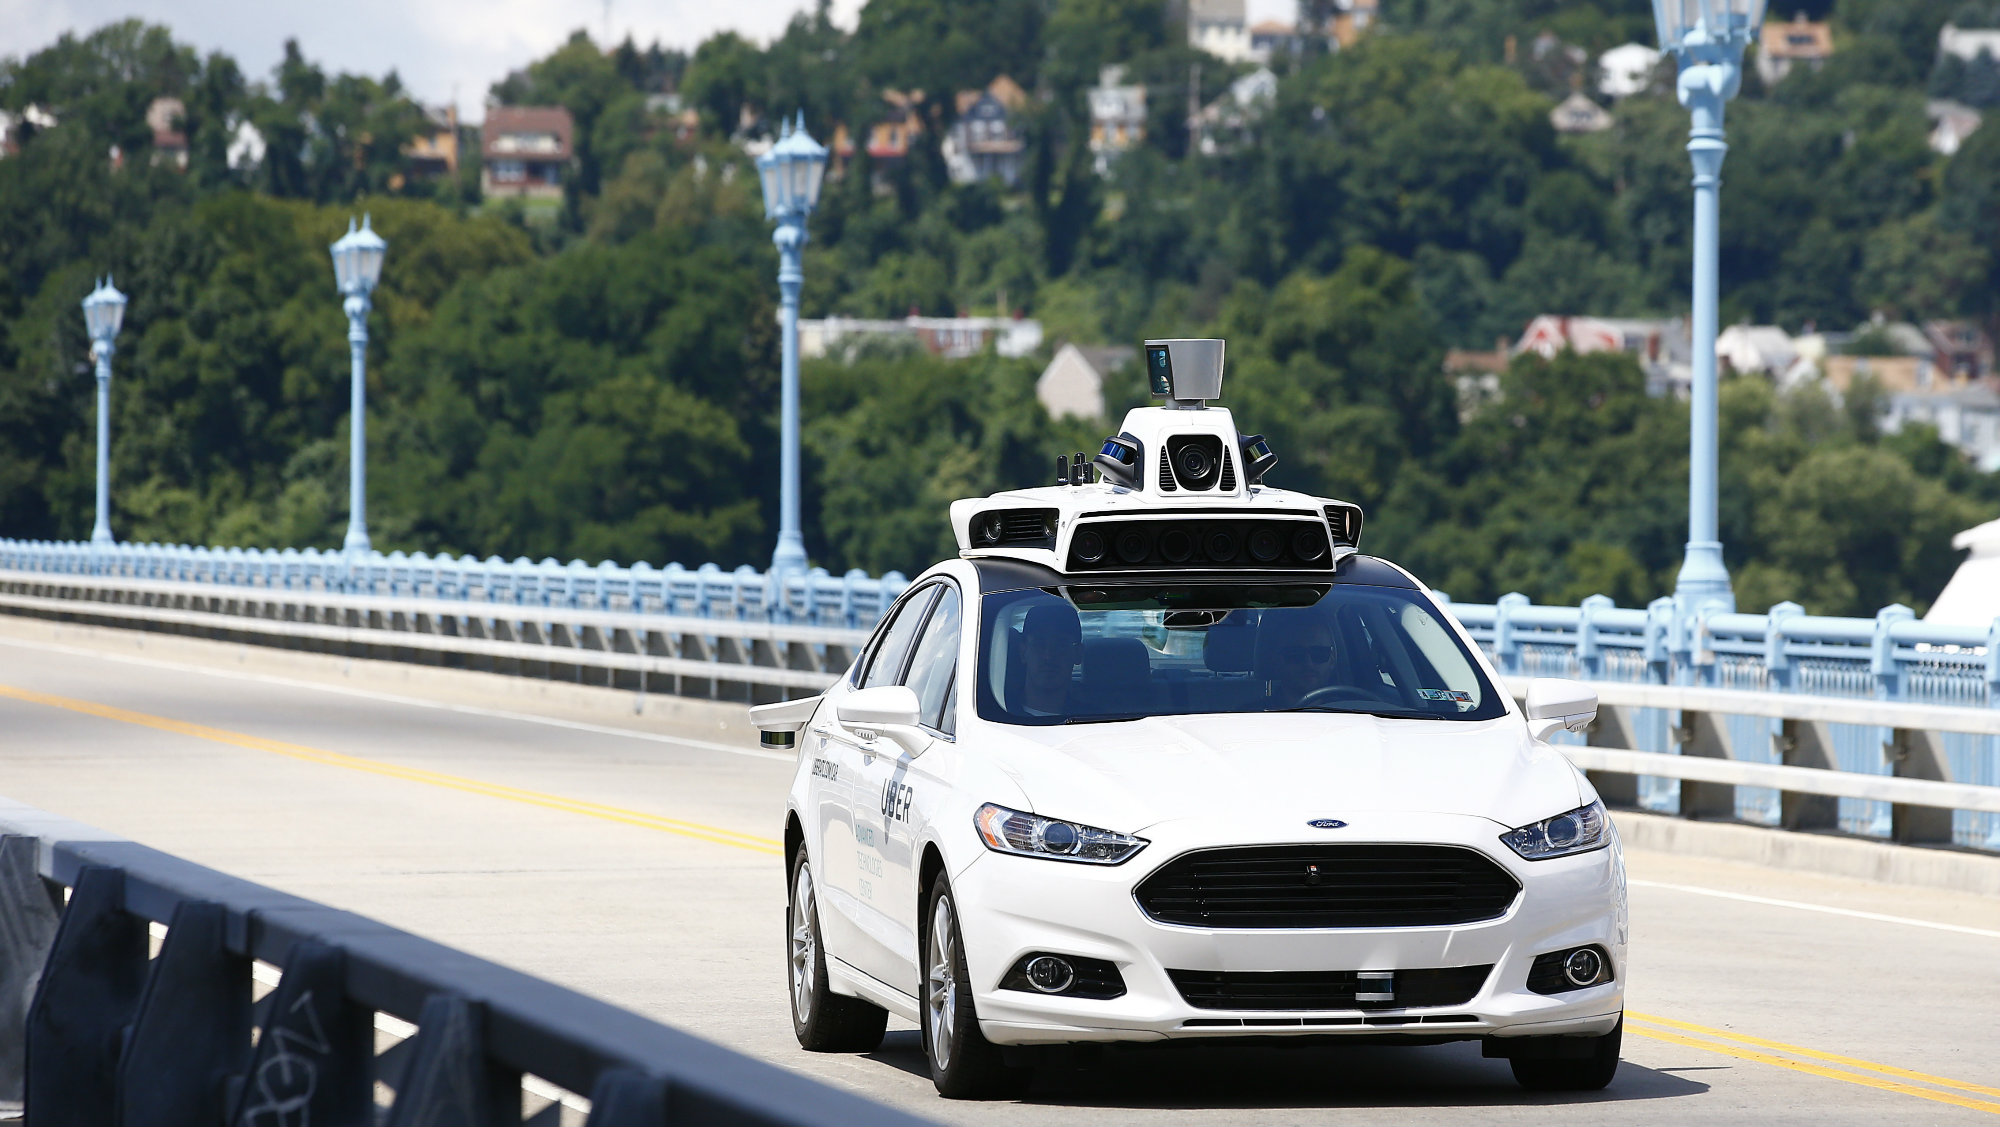 In this Thursday, Aug. 18, 2016, file photo, Uber employees test a self-driving Ford Fusion hybrid car, in Pittsburgh.